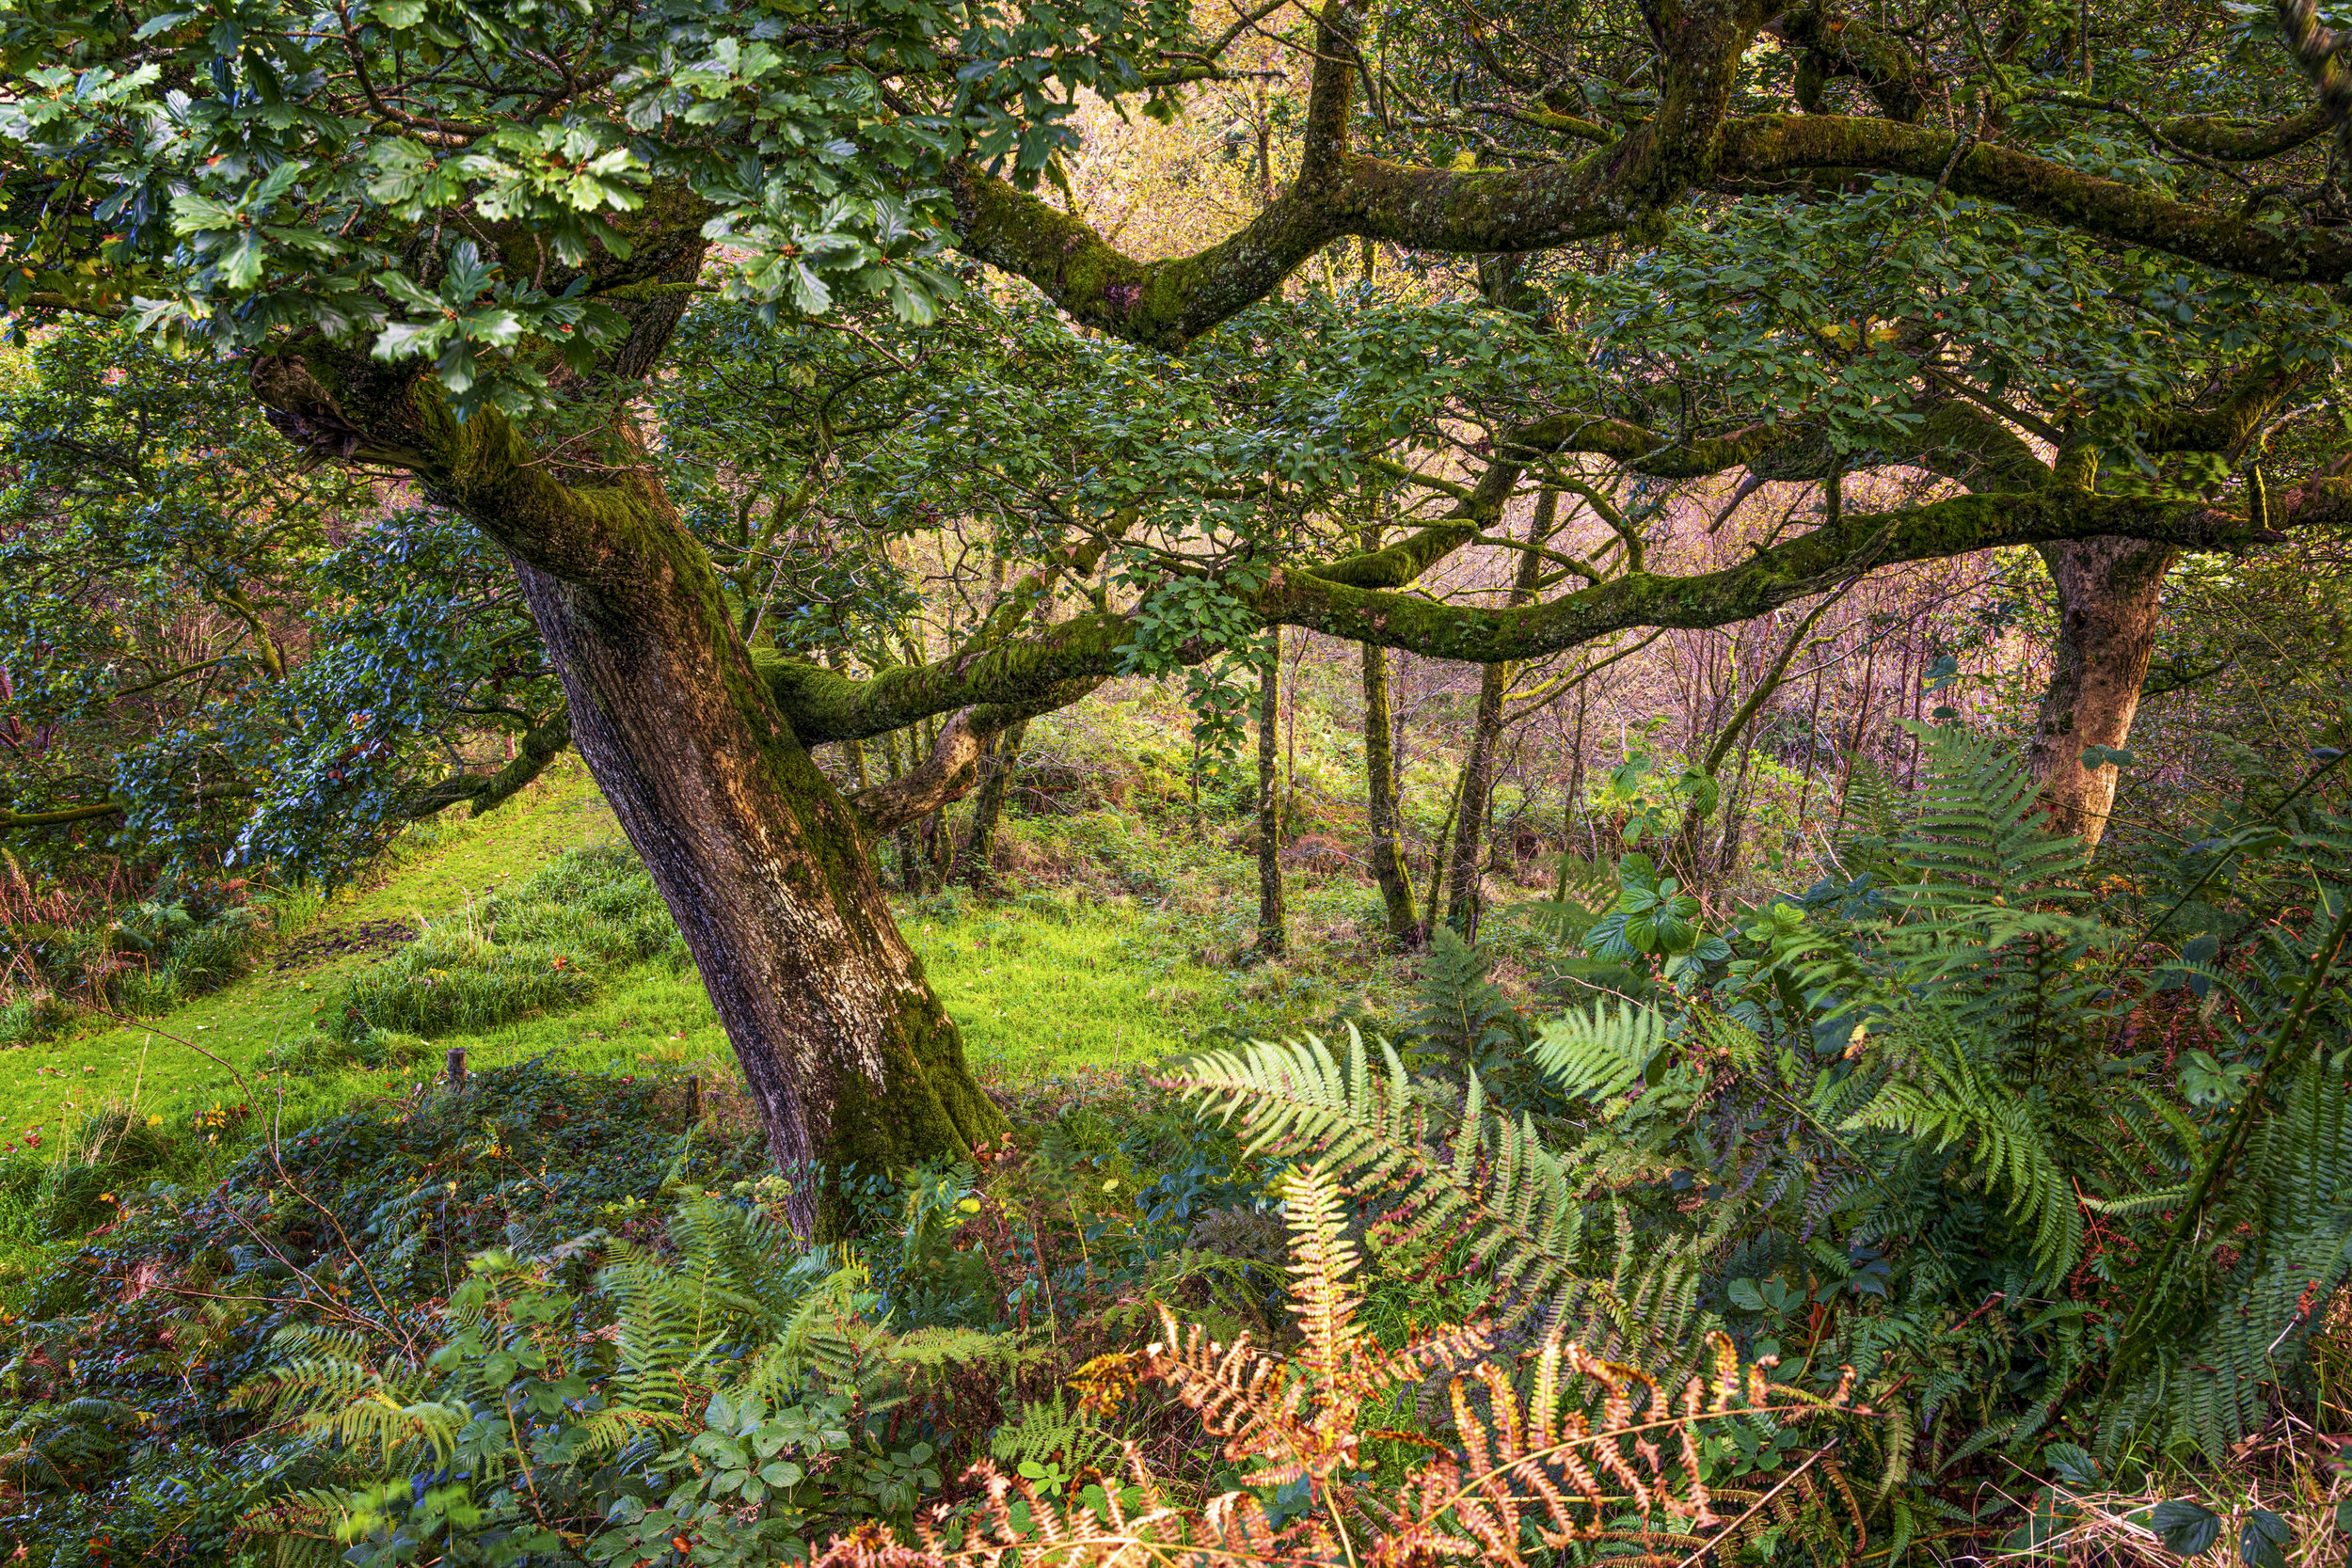 This is my favourite photograph from the day. I like the impact of the golden bracken in the foreground and connection between the two oak trees, like an old and happy couple, arm in arm, holding on to each other whatever the weather throws at them.